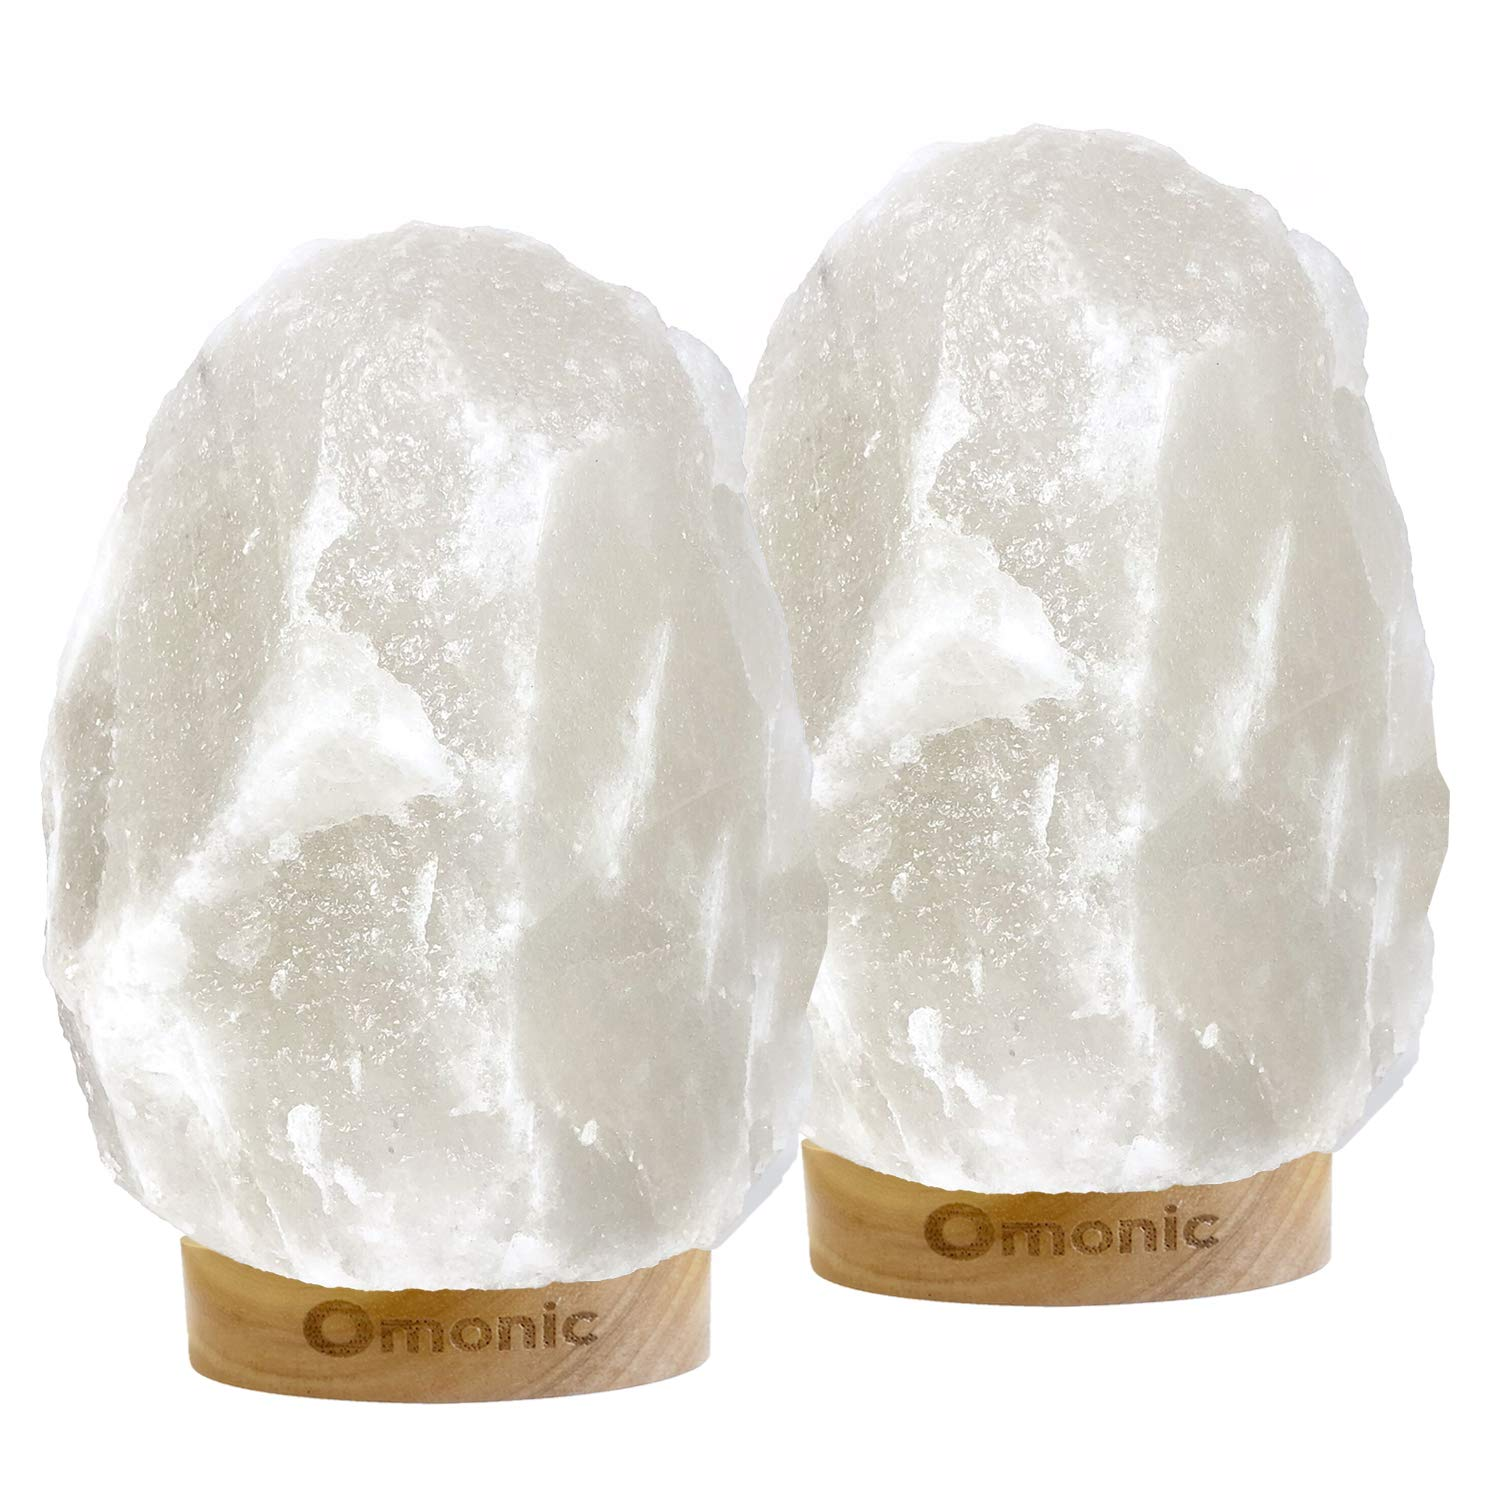 Omonic 2 Pack White Himalayan Salt Lamp Night Light Lights Crystal Hand Carved Hymalain Rock Table Lamps(5-8 lbs,6.5-10''),Thailand Rubberwood Base, Dimmable Switch Control (Bulbs Included)